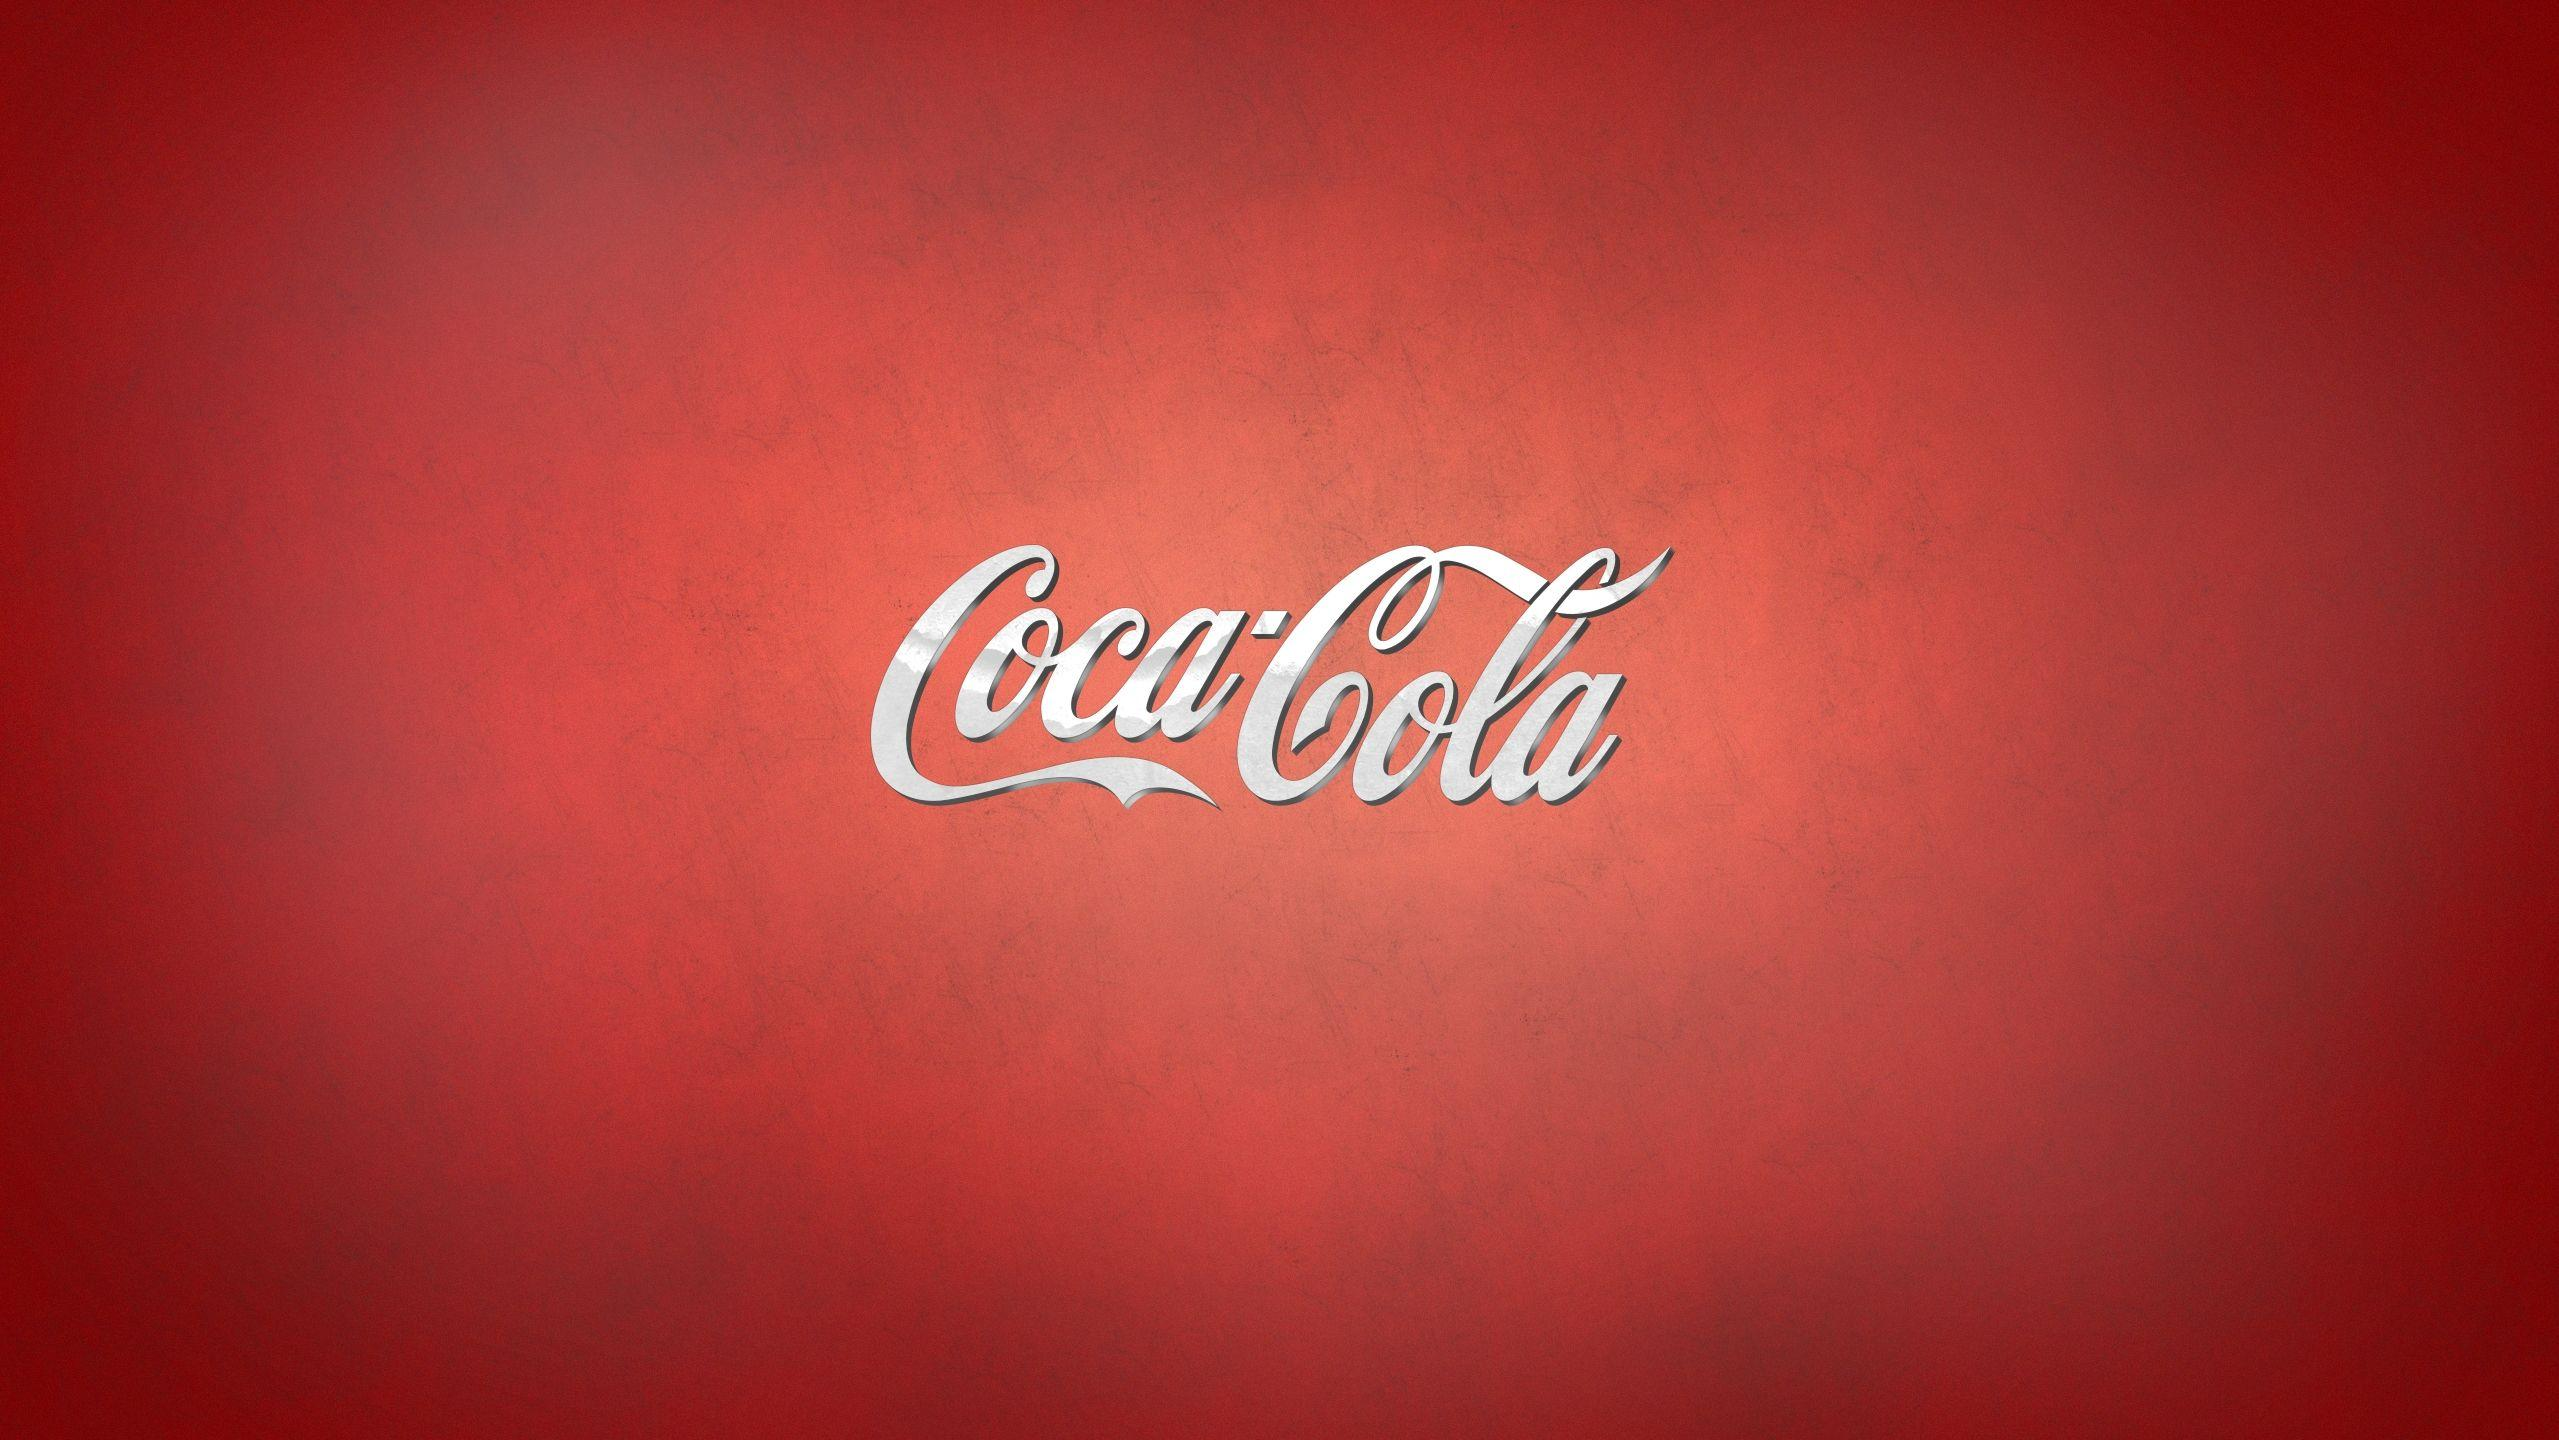 Coca Cola Wallpaper Download HD 15287 - Amazing Wallpaperz